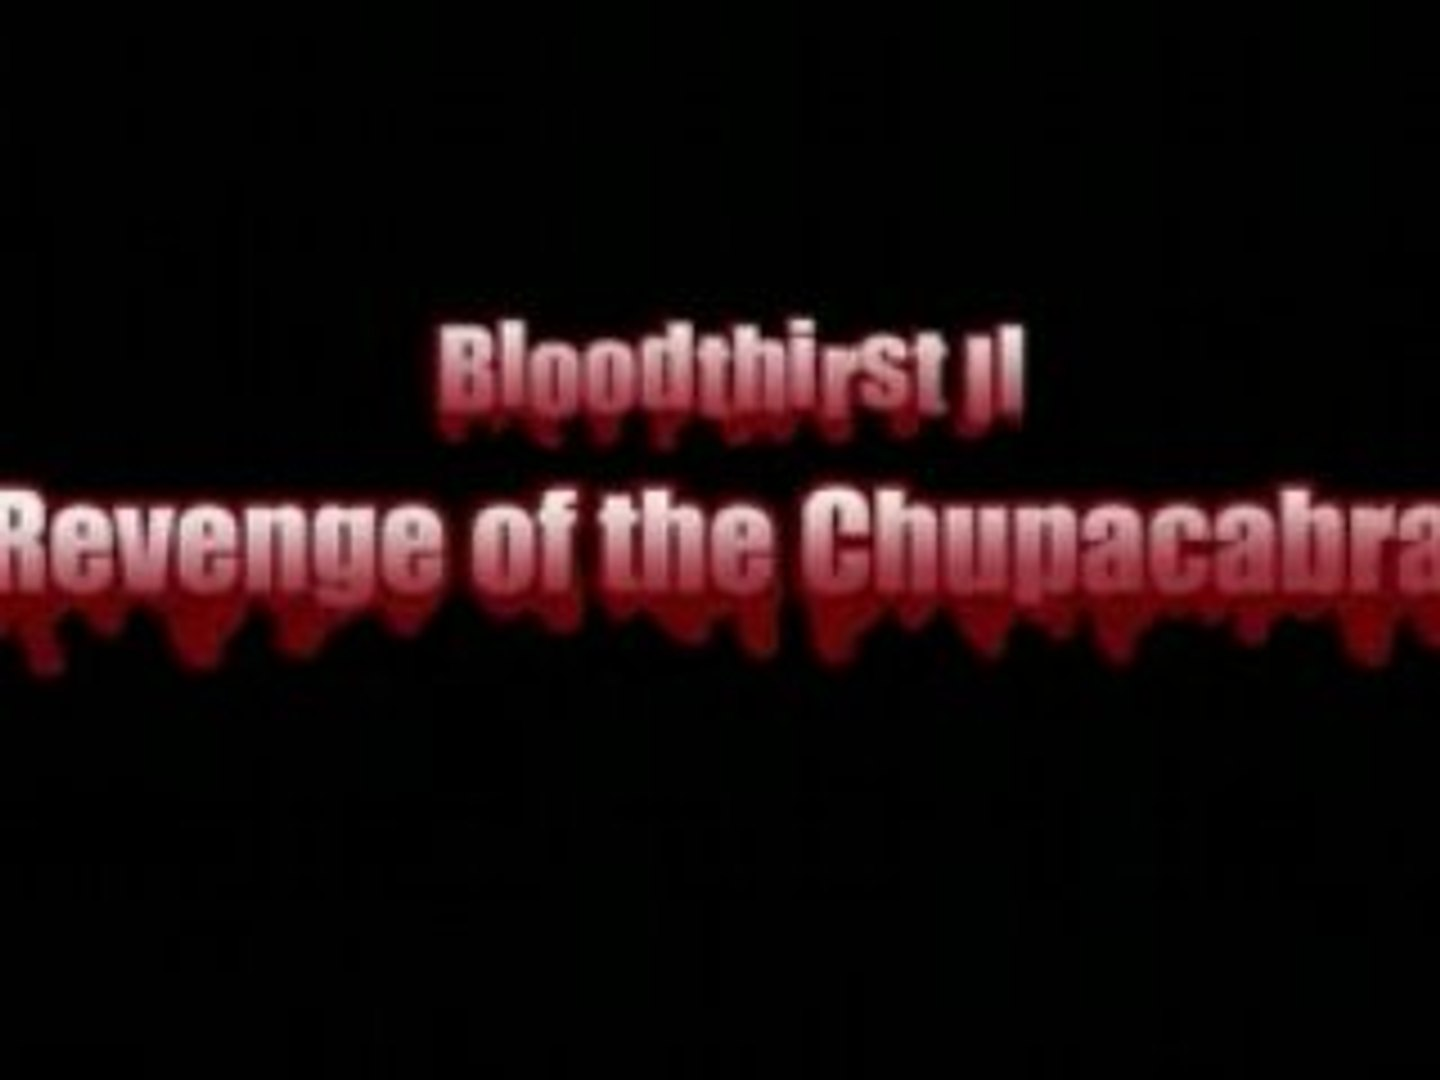 Bloodthirst 2 - Revenge of the Chupacabras